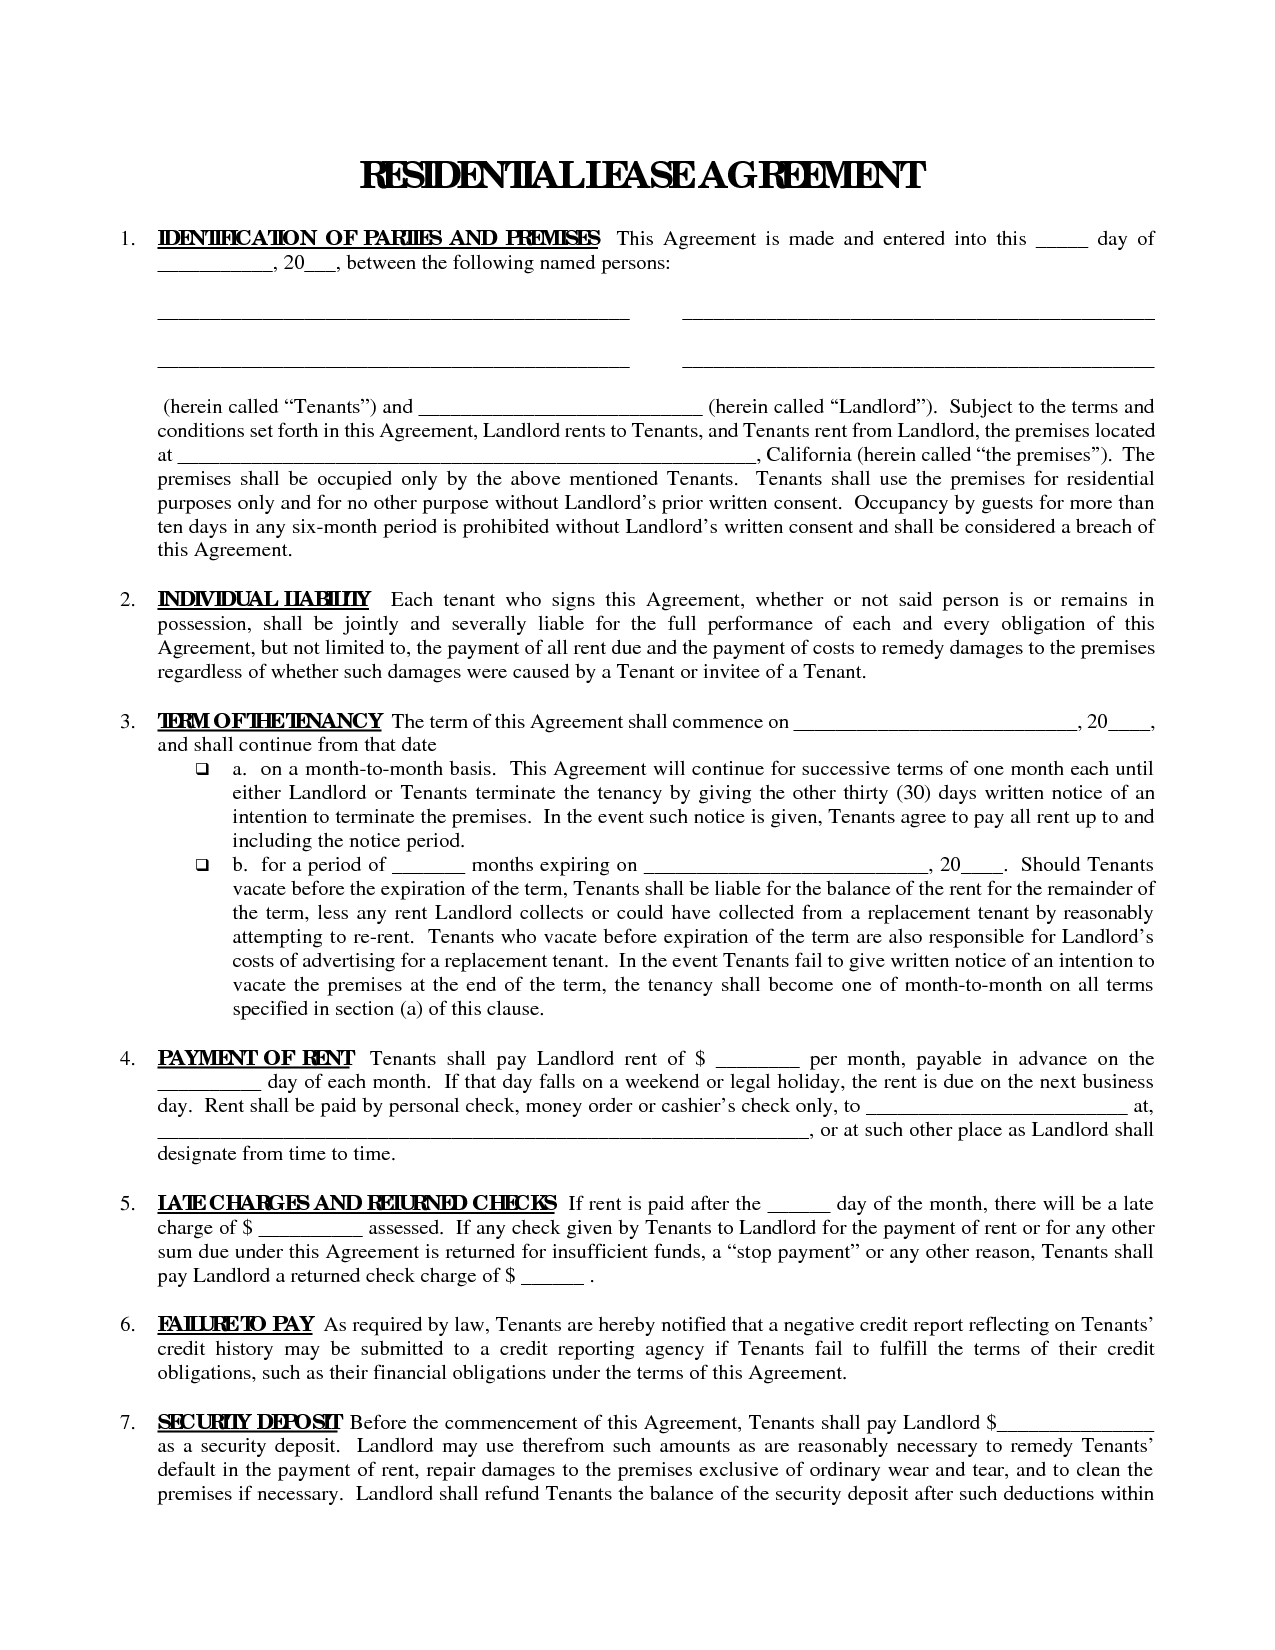 Printable Residential Free House Lease Agreement Residential Lease